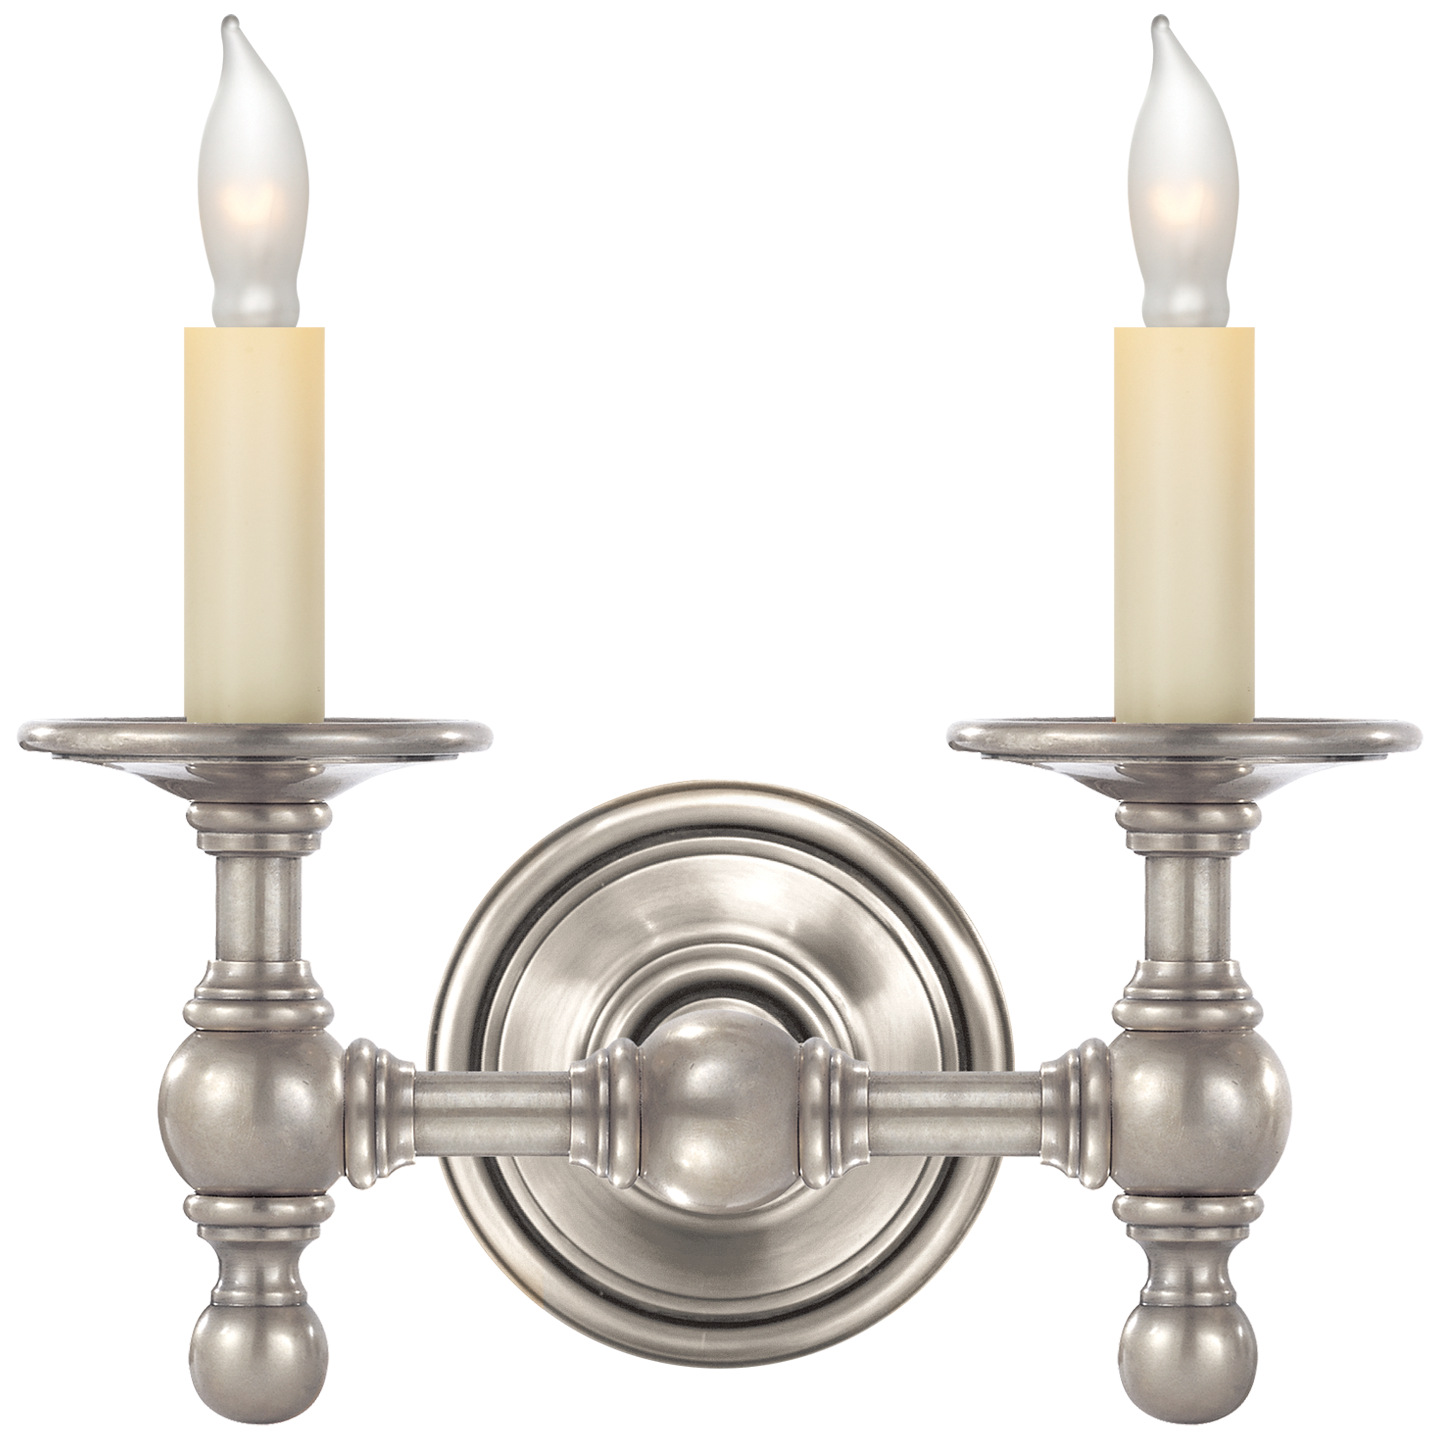 Classic Double Sconce in Polished Nickel   Sconces, Visual ... on Decorative Wall Sconces Candle Holders Chrome Nickel id=98459